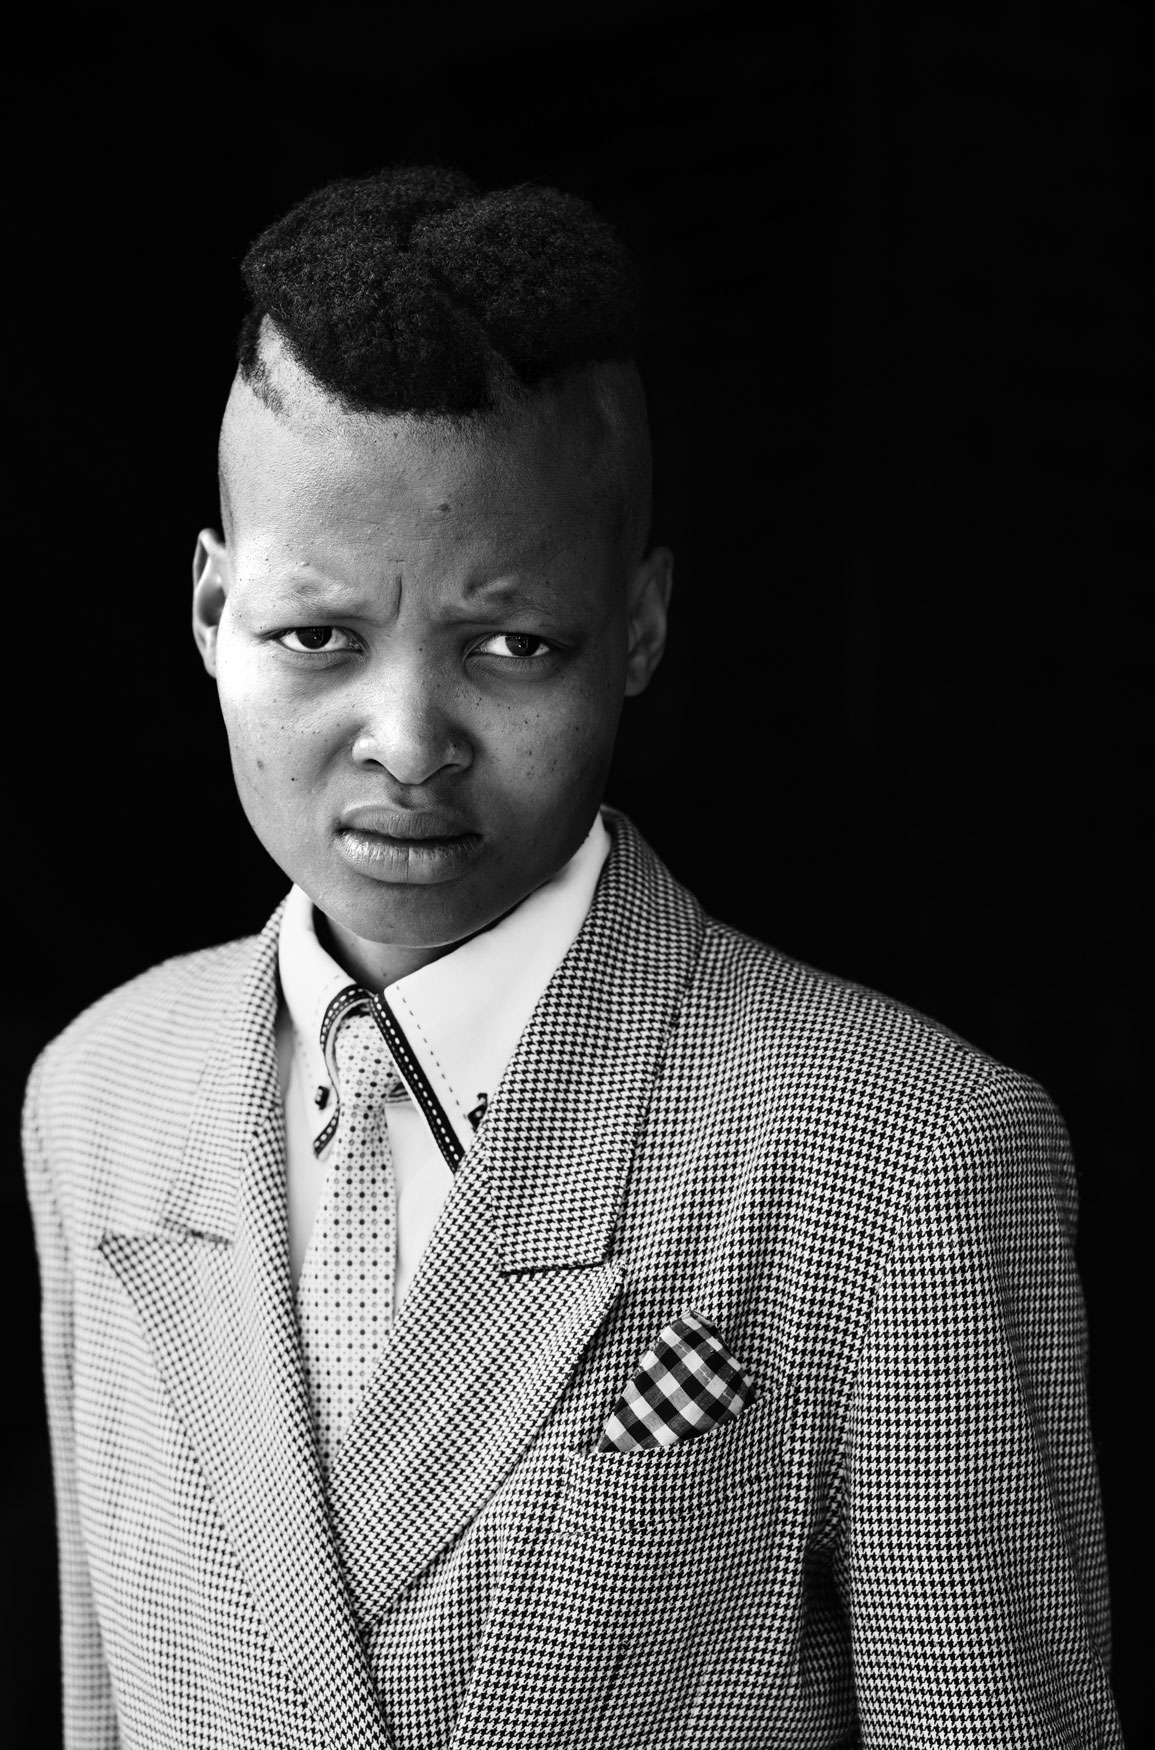 Vuyelwa Vuvu Makubetse, Daveyton, Johannesburg. From the series Faces and Phases, 2013.